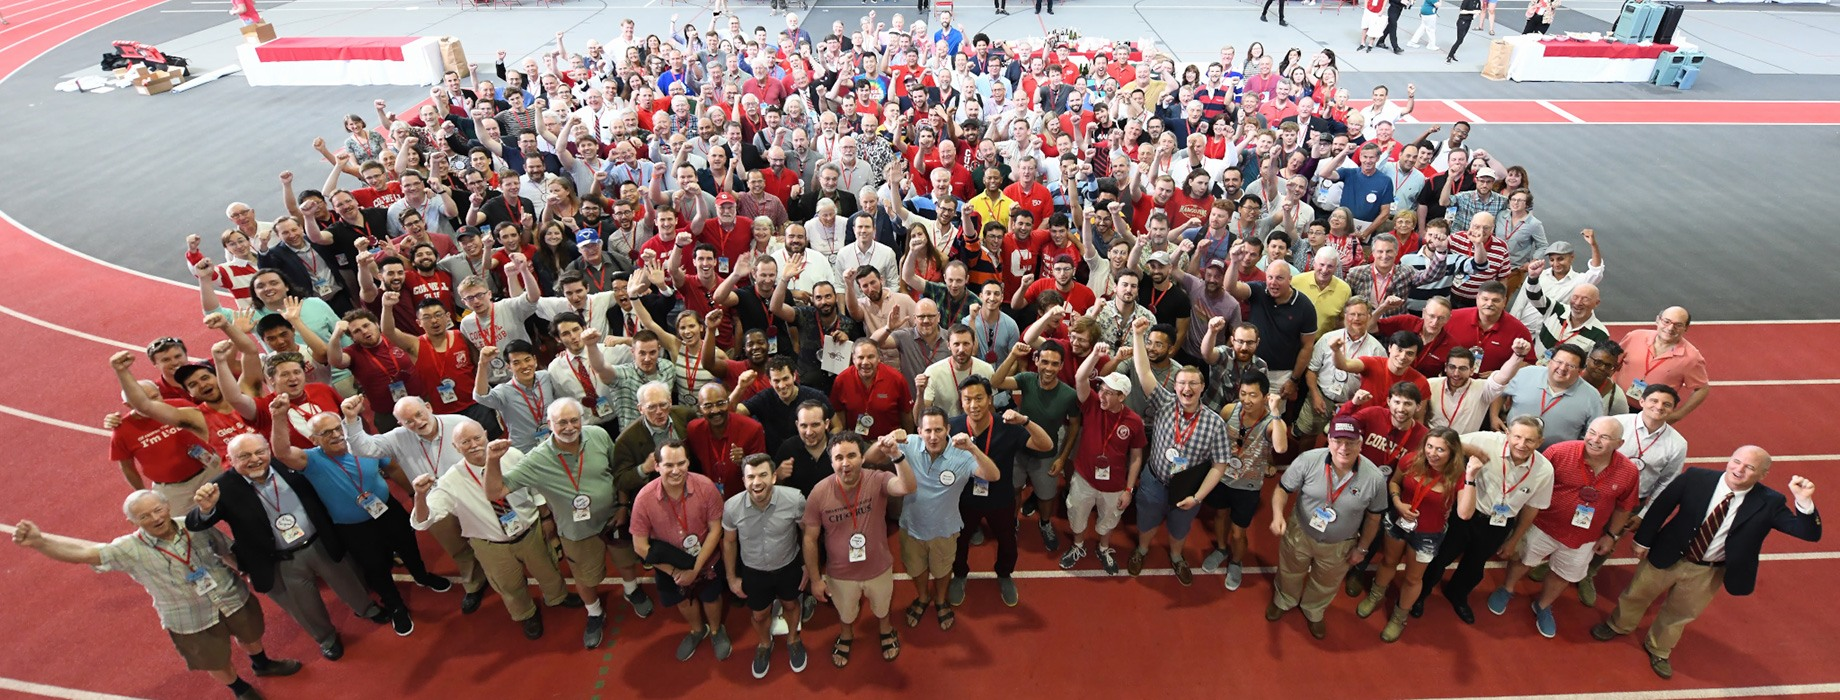 Group shot of more than 300 alumni of the Glee Club